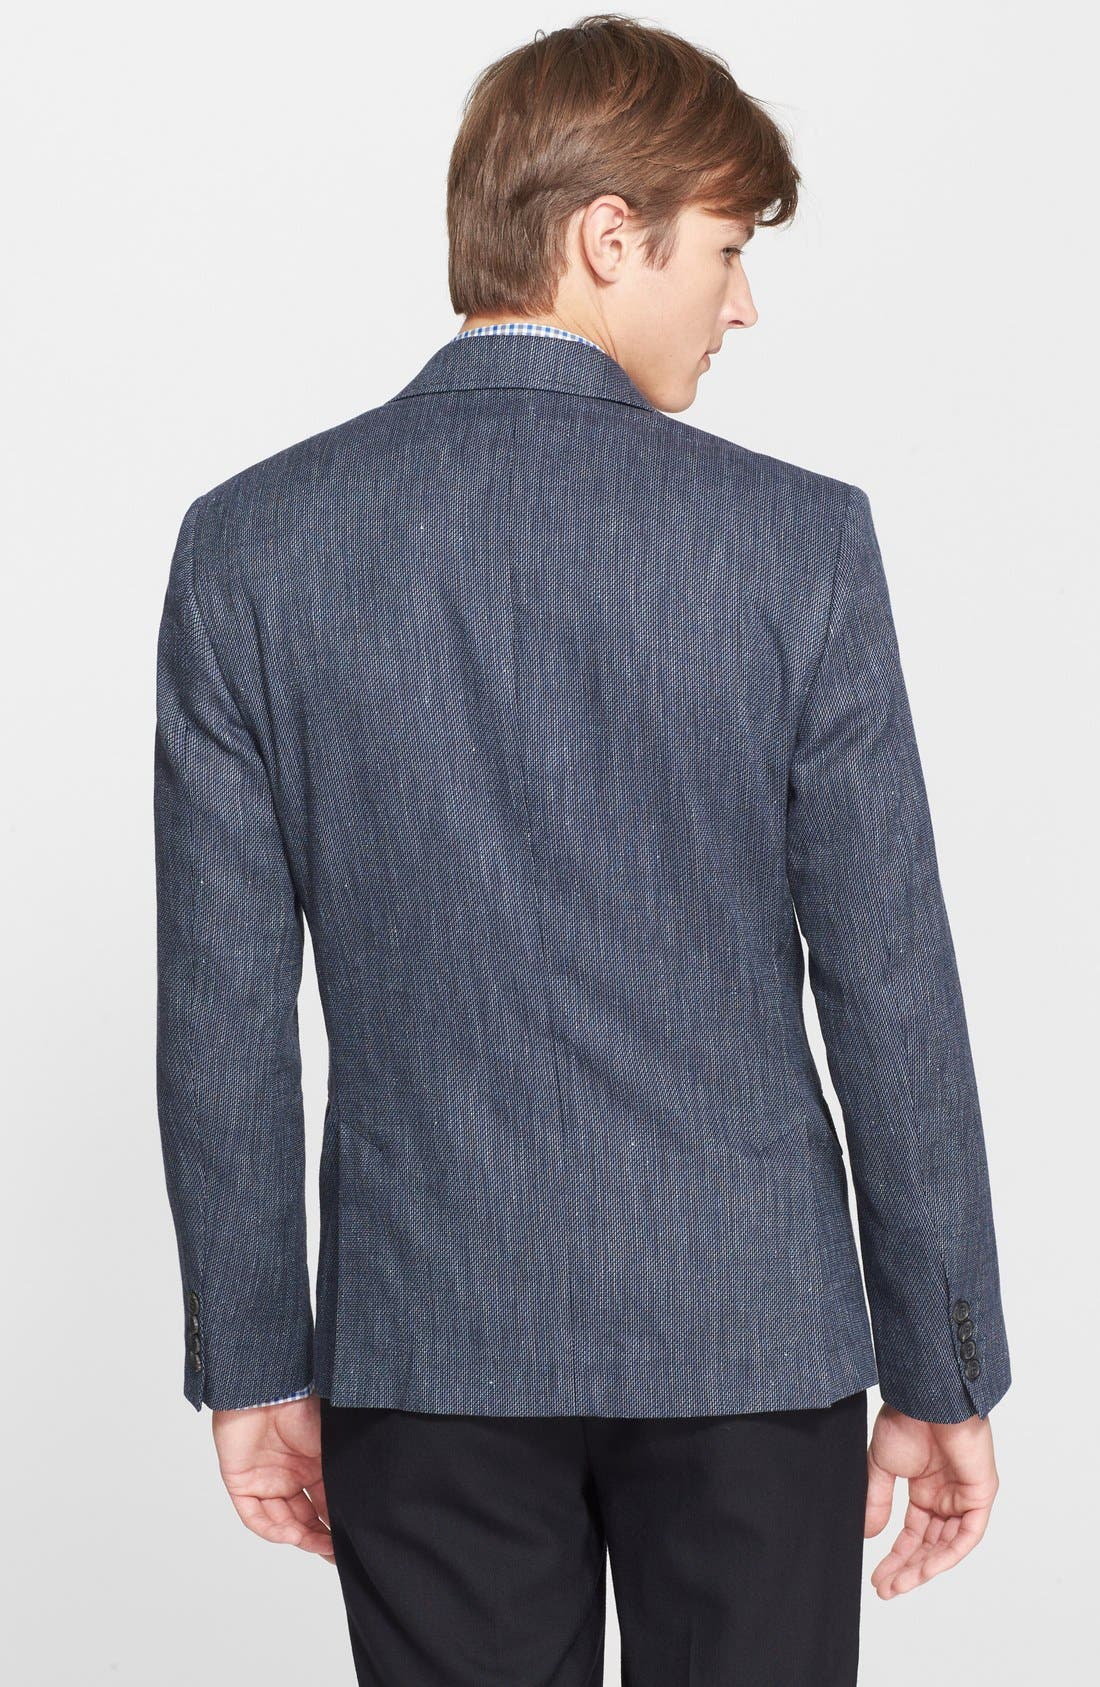 BILLY REID, 'Lexington' Trim Fit Cotton, Linen & Silk Sport Coat, Alternate thumbnail 3, color, 462